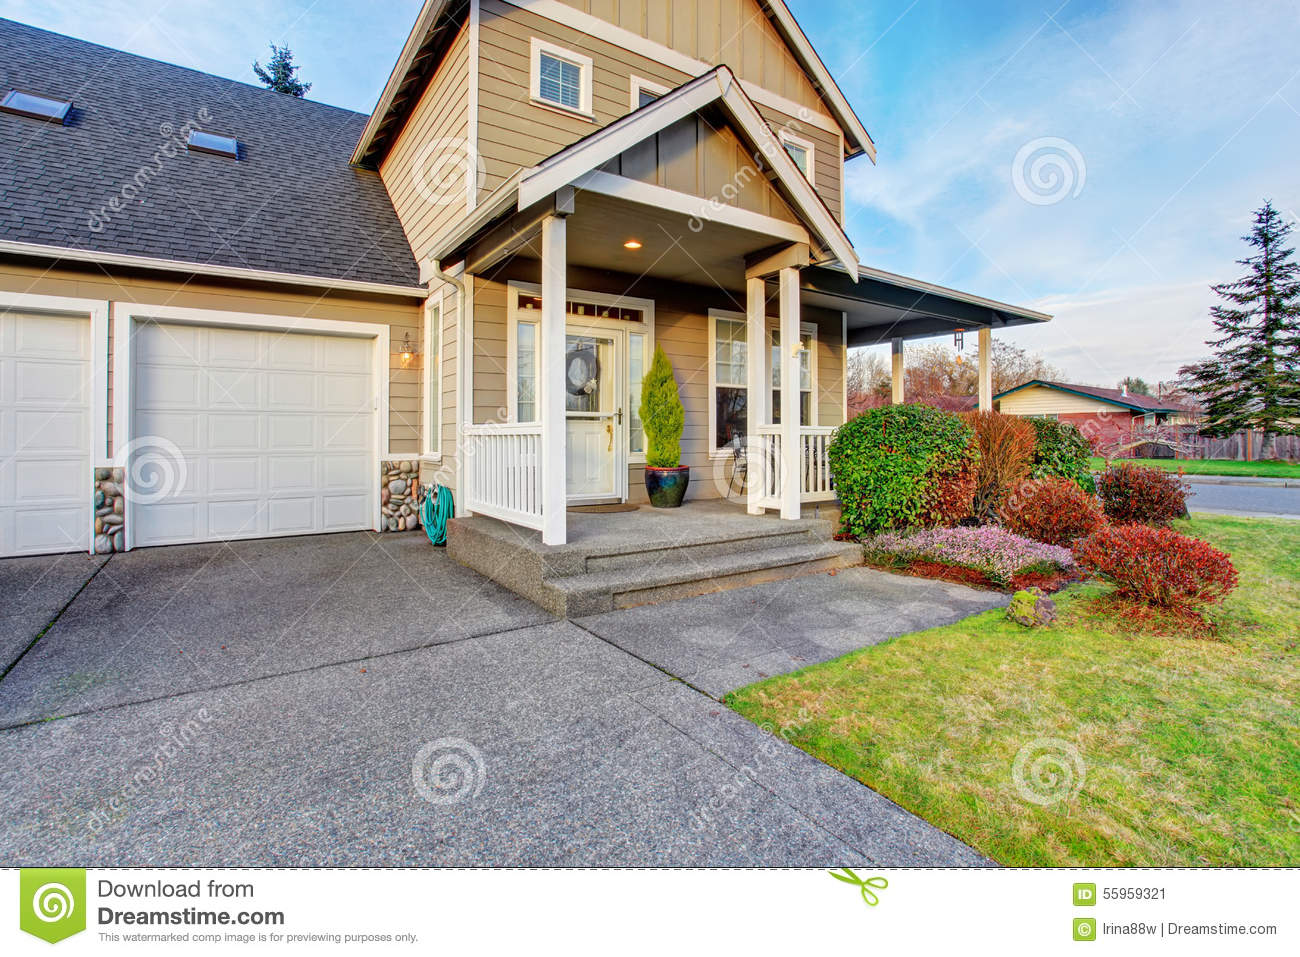 Nice Front Yard With Porch And Walkway.nice Front Yard